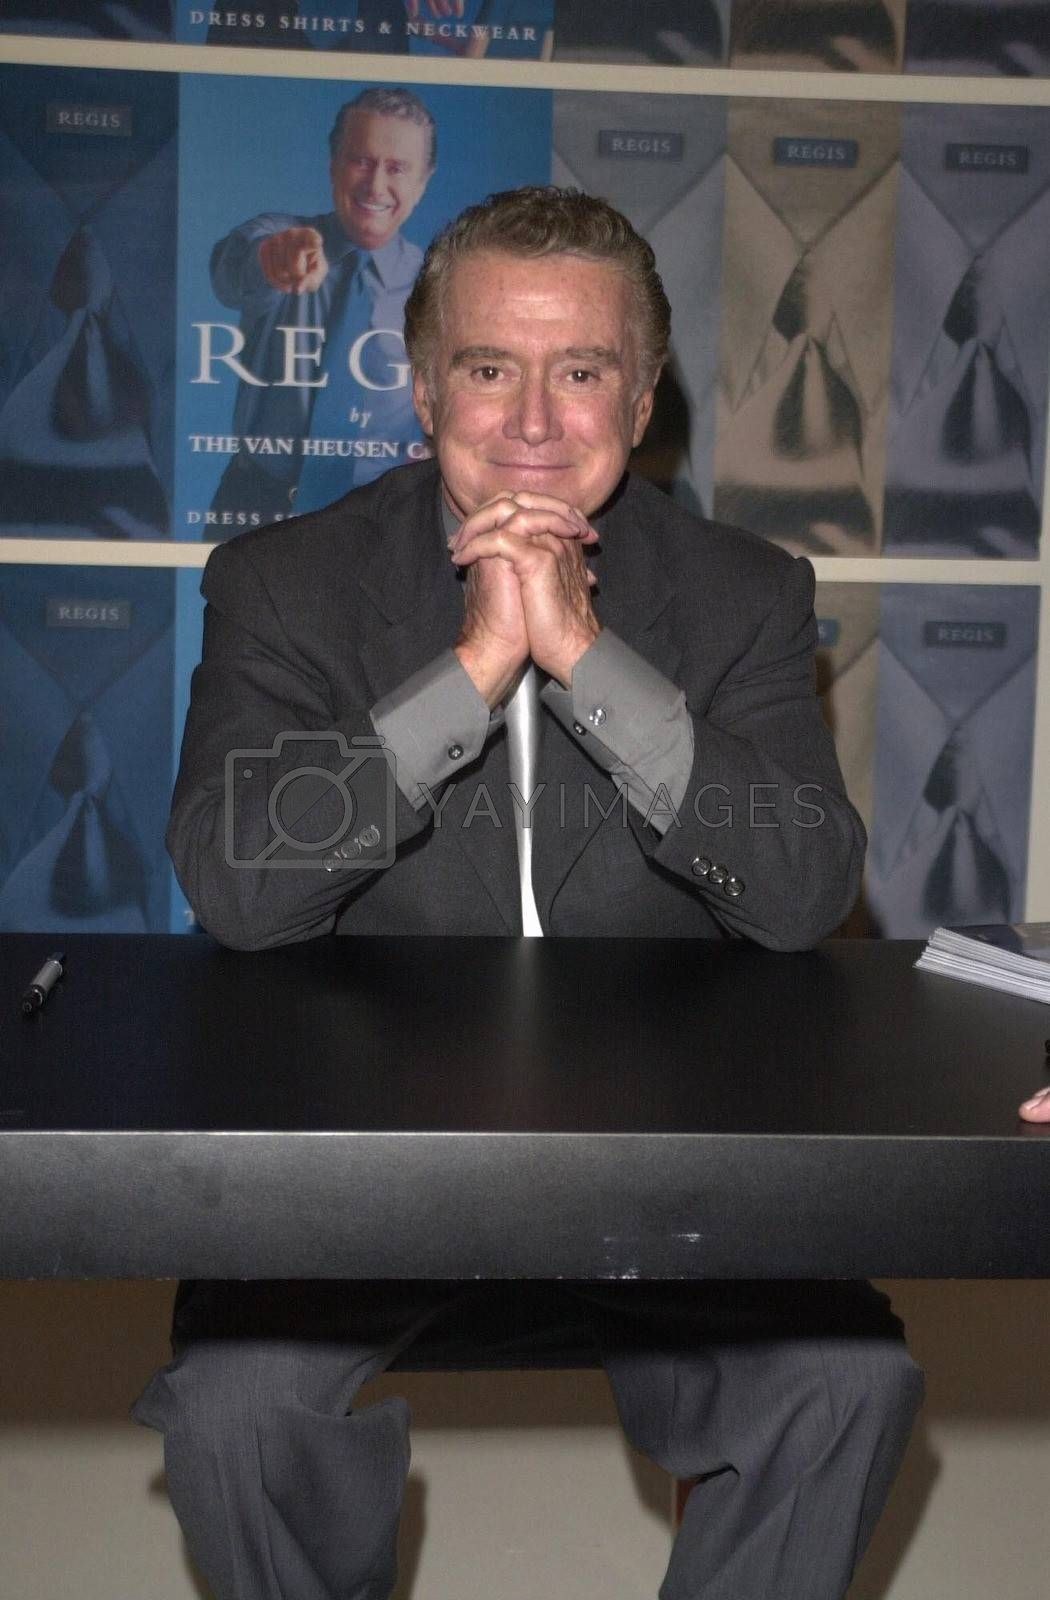 Regis Philbin at Robinson's-May in Beverly Hills to promote new clothes line. 08-23-00